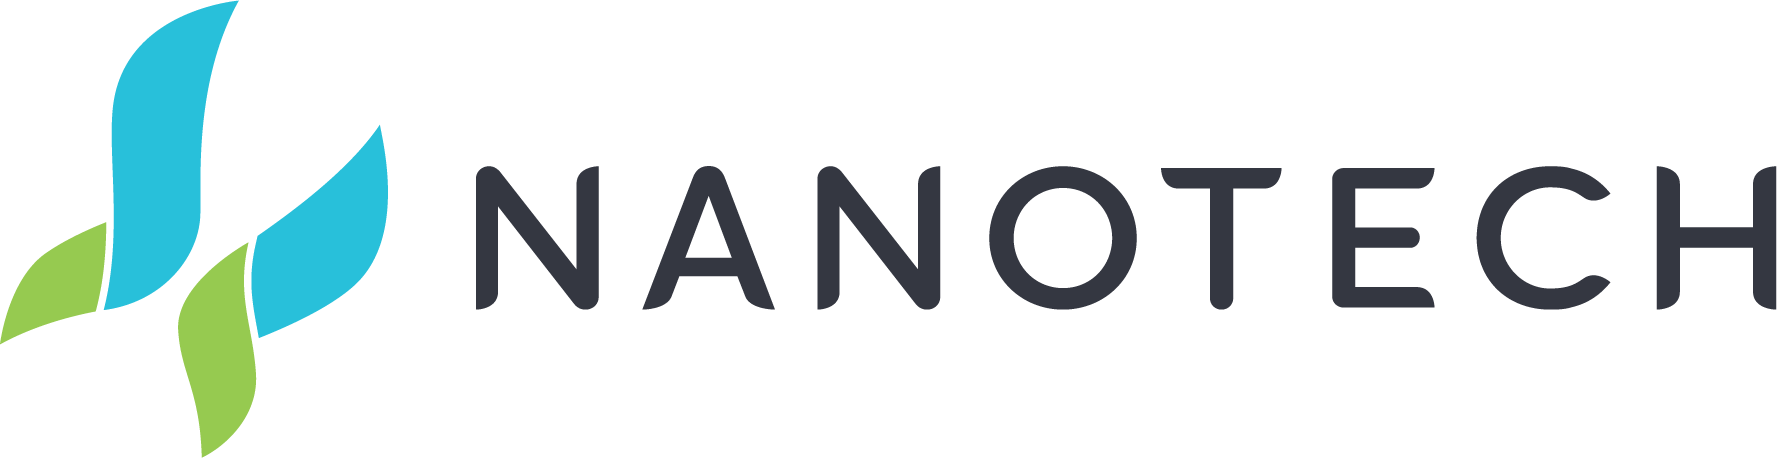 Nanotech to Attend Sports Licensing and Tailgate Show in Las Vegas